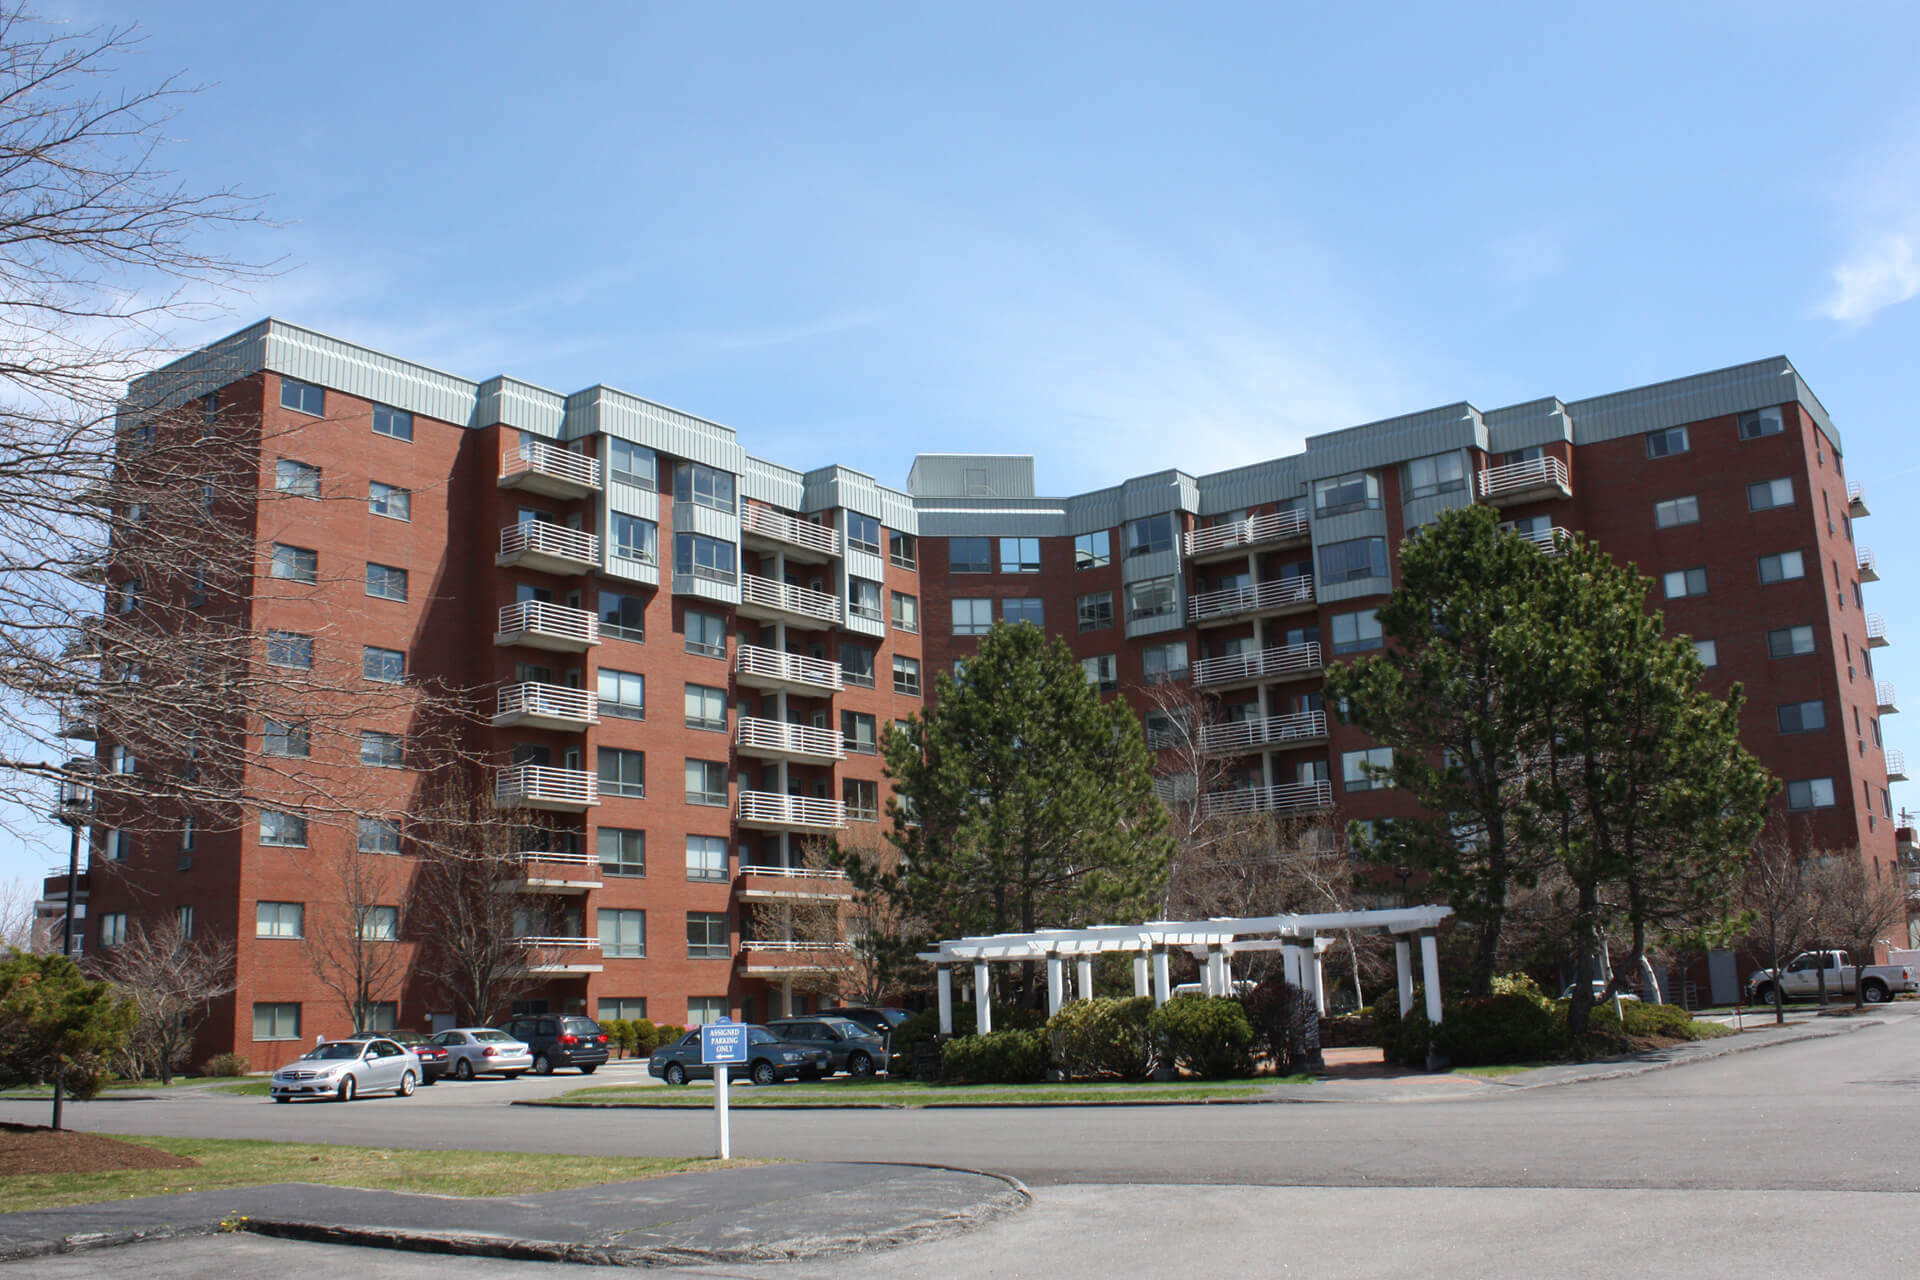 elite condo complex - best rated condominium insurance provider wells maine and portsmouth nh